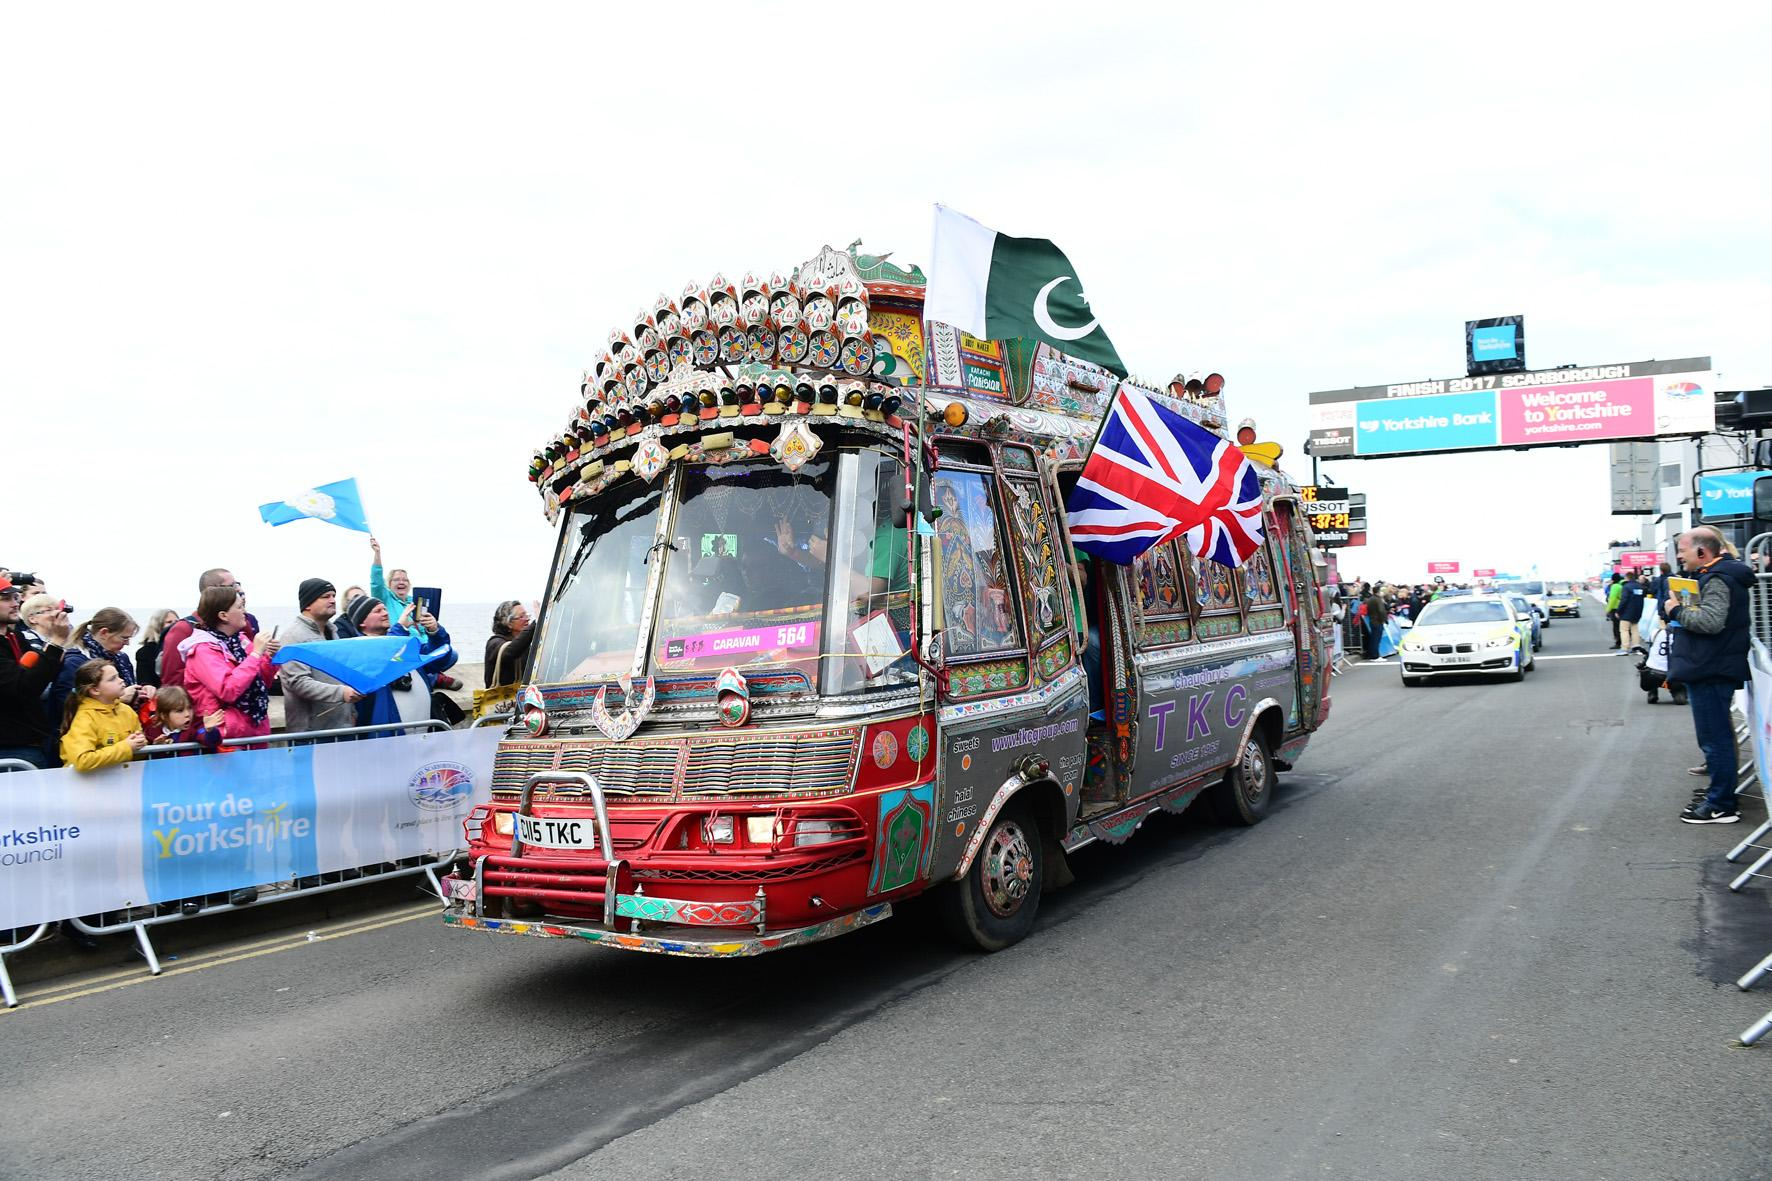 Picture of one of the vehicles in the 2017 Tour de Yorkshire caravan